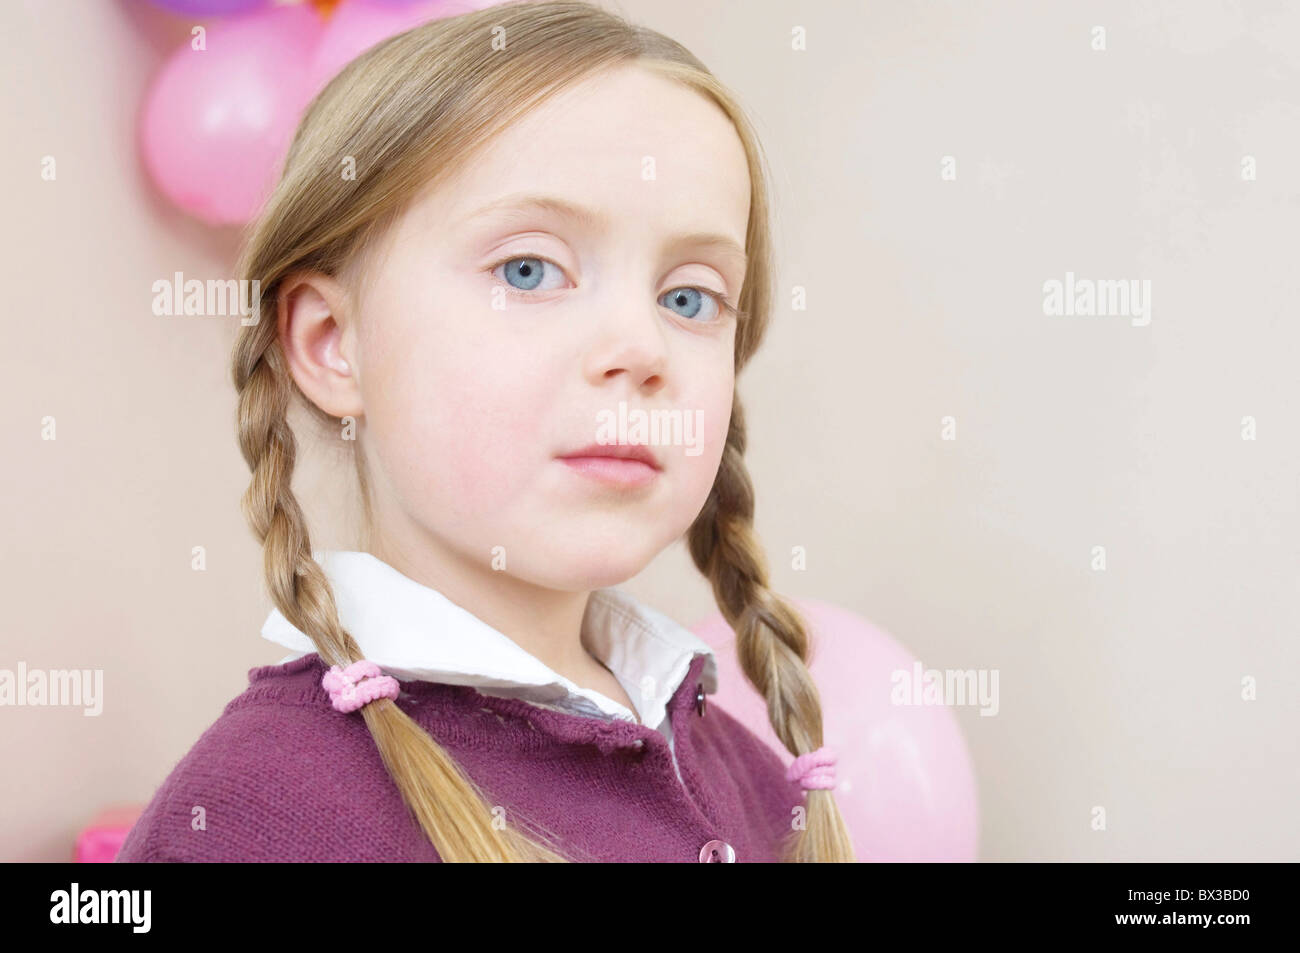 portrait of young girl - Stock Image